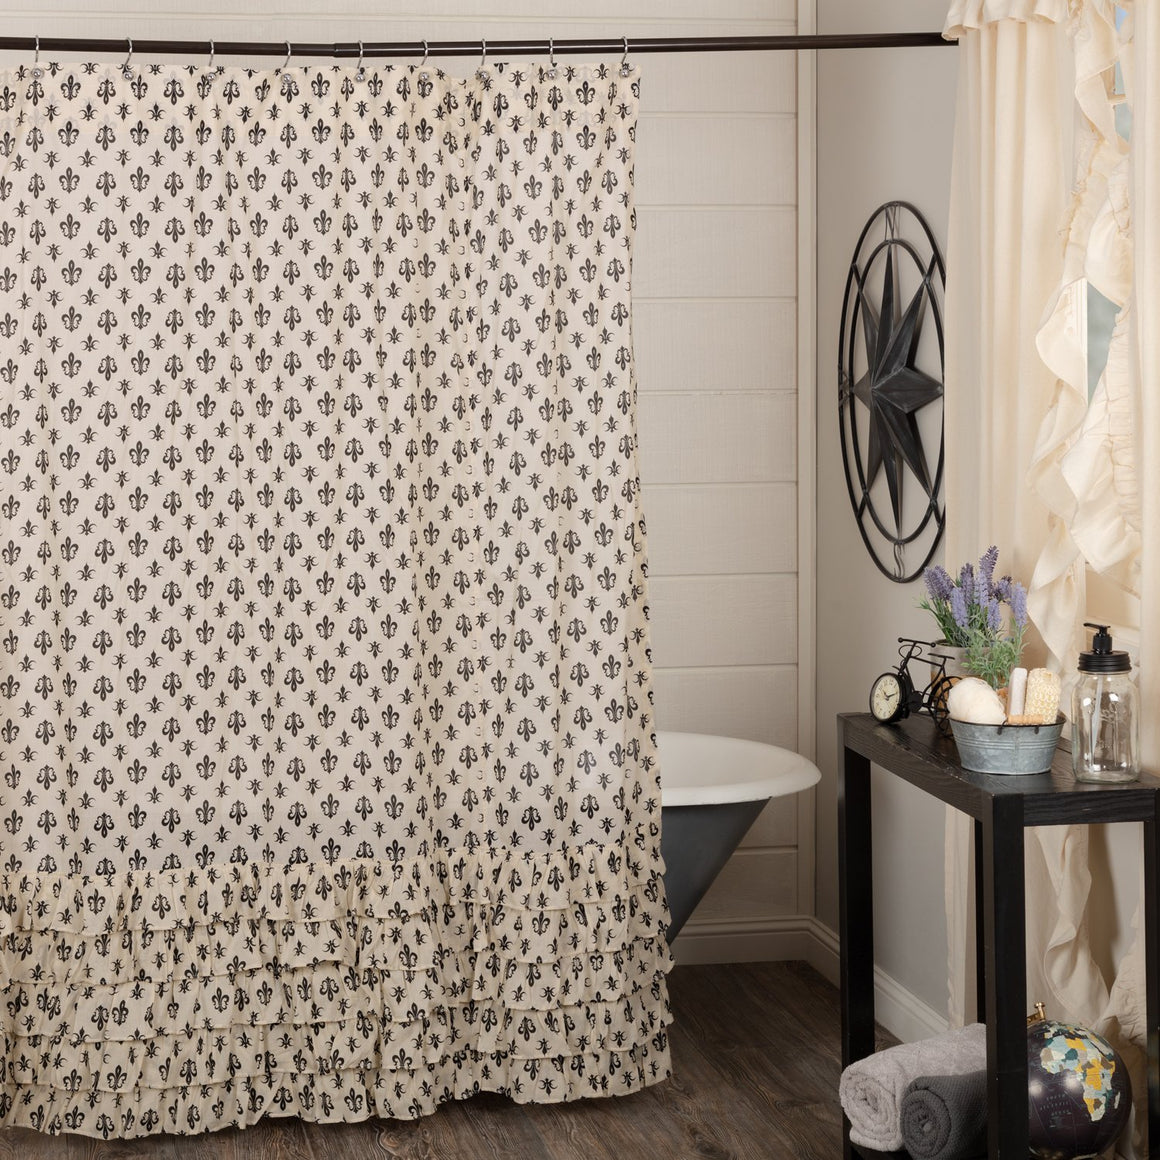 Elysee Ruffled Shower Curtain 72x72